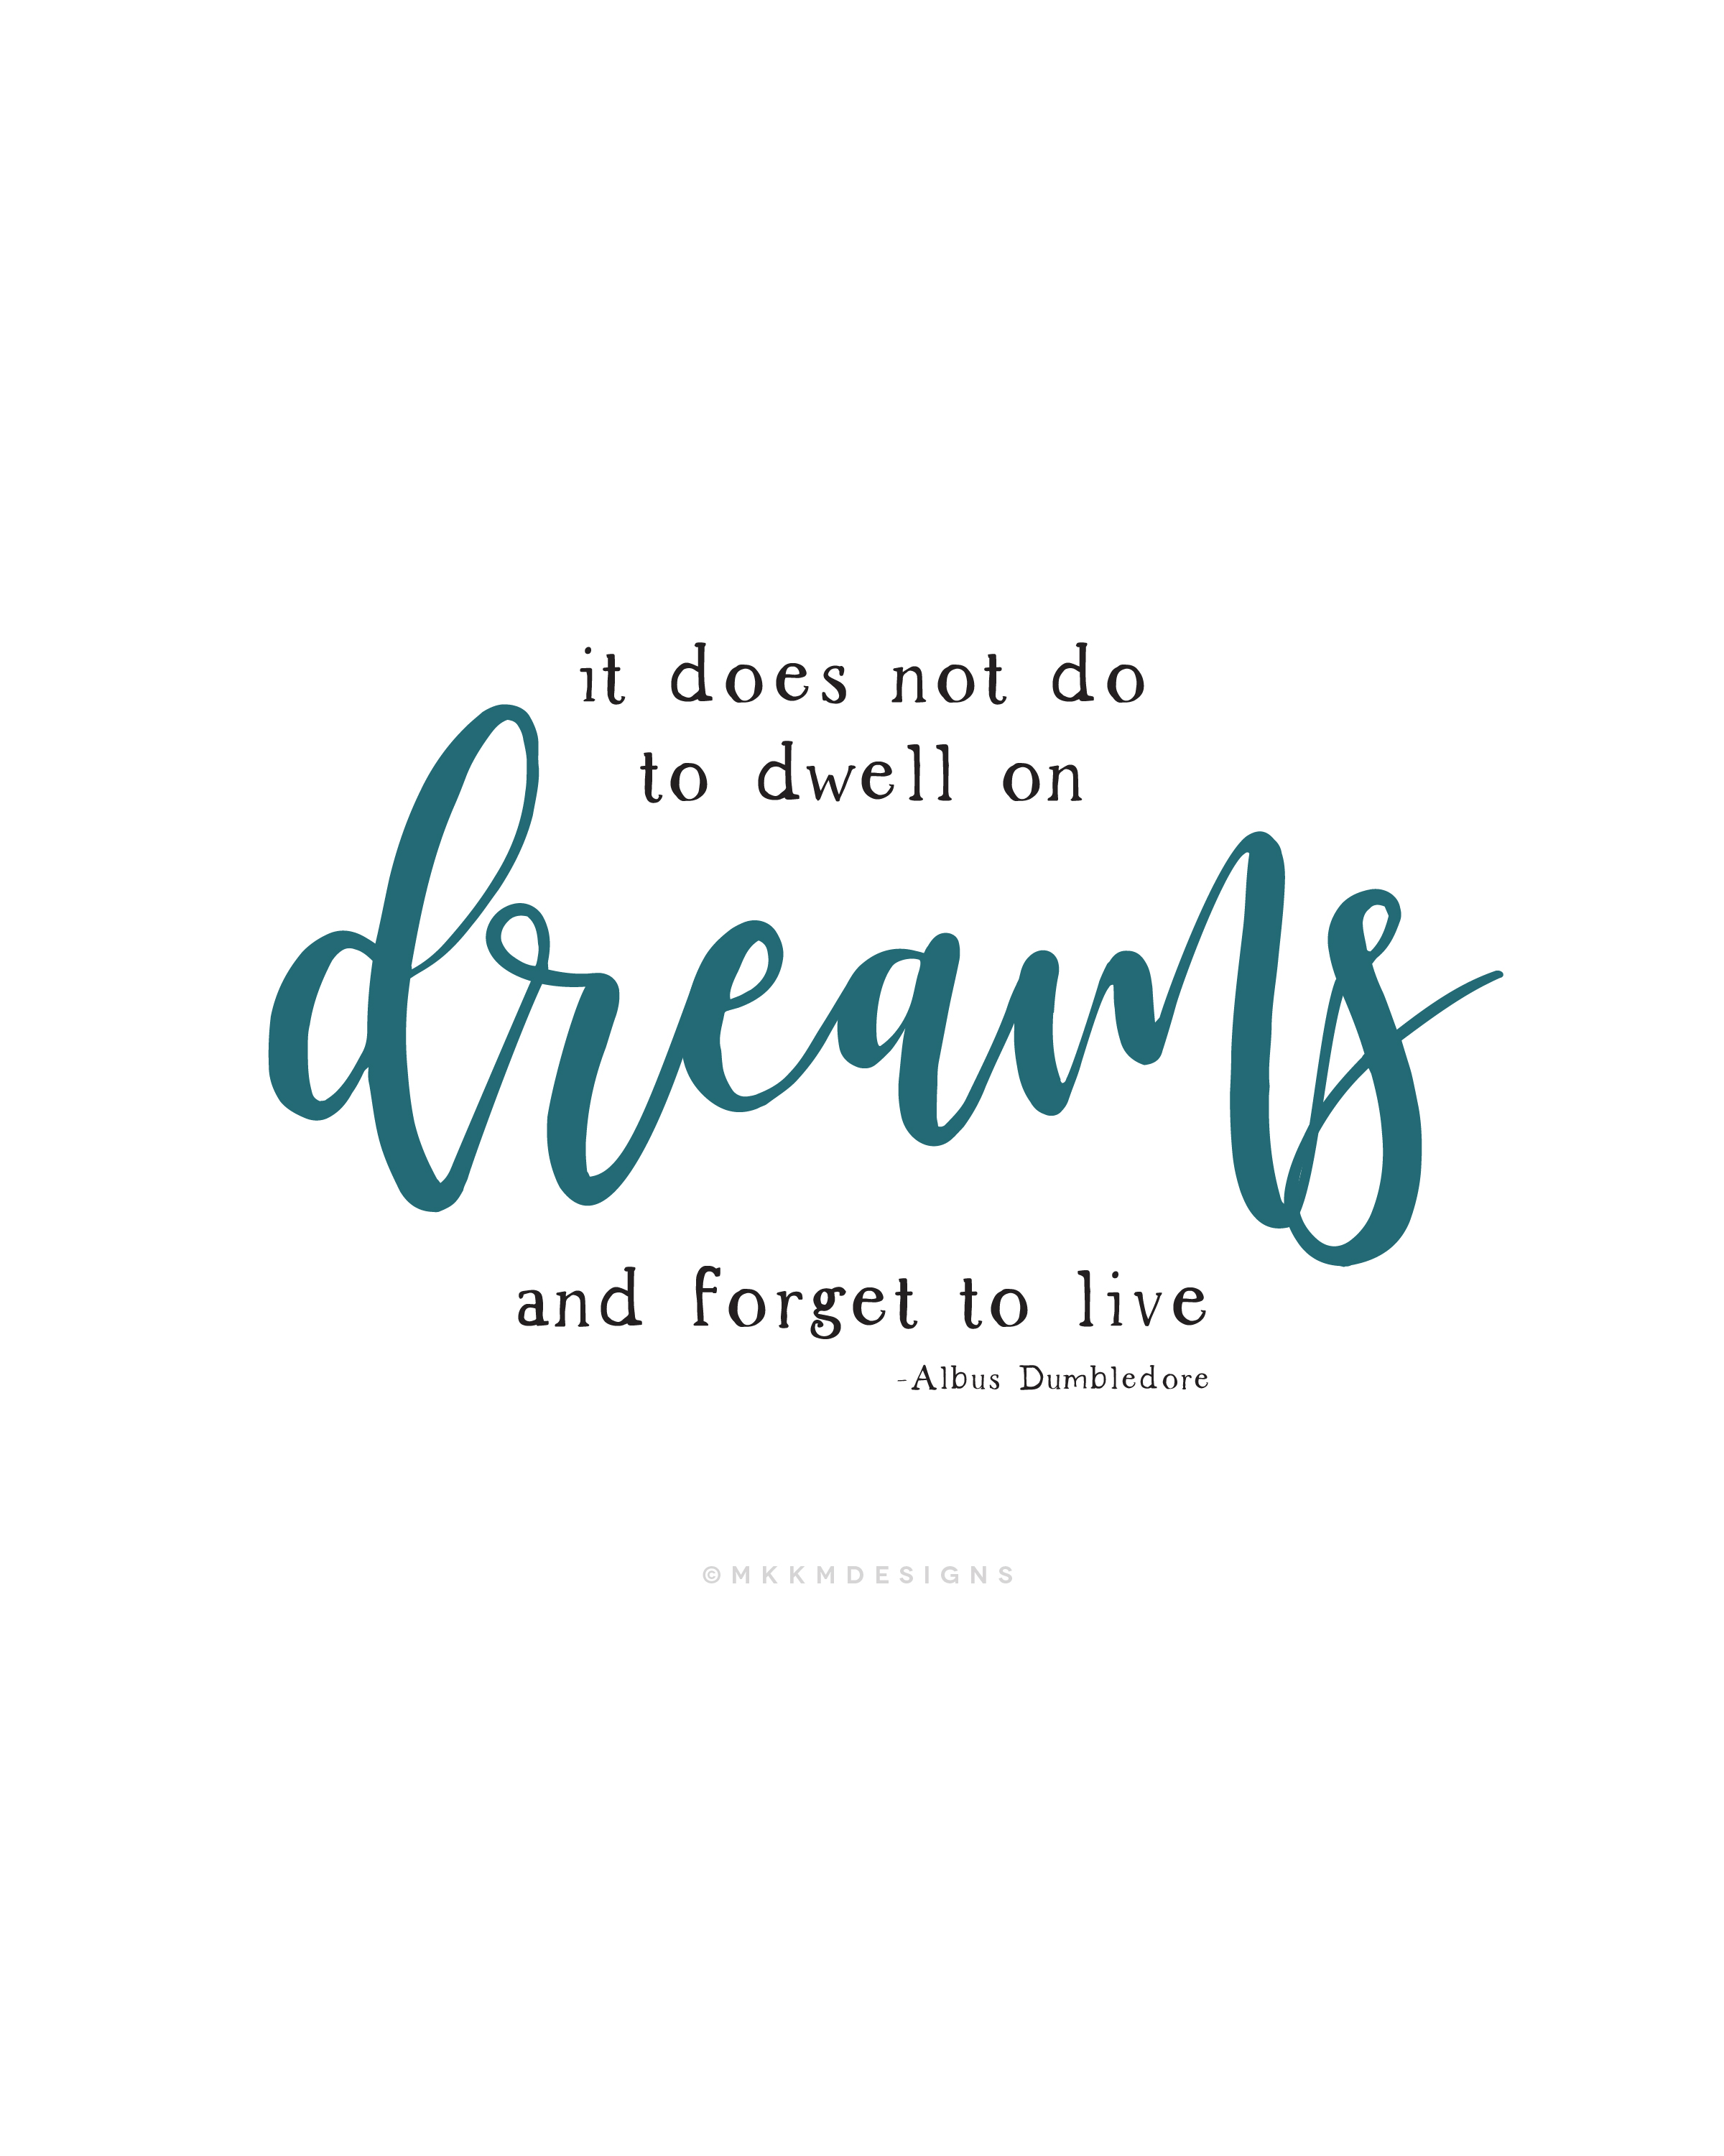 It does not do to dwell on dreams and forget to live - Albus Dumbledore✦ Quote of the day ✦ Monday motivation, New Years Motivation  // ✦ mkkmdesigns